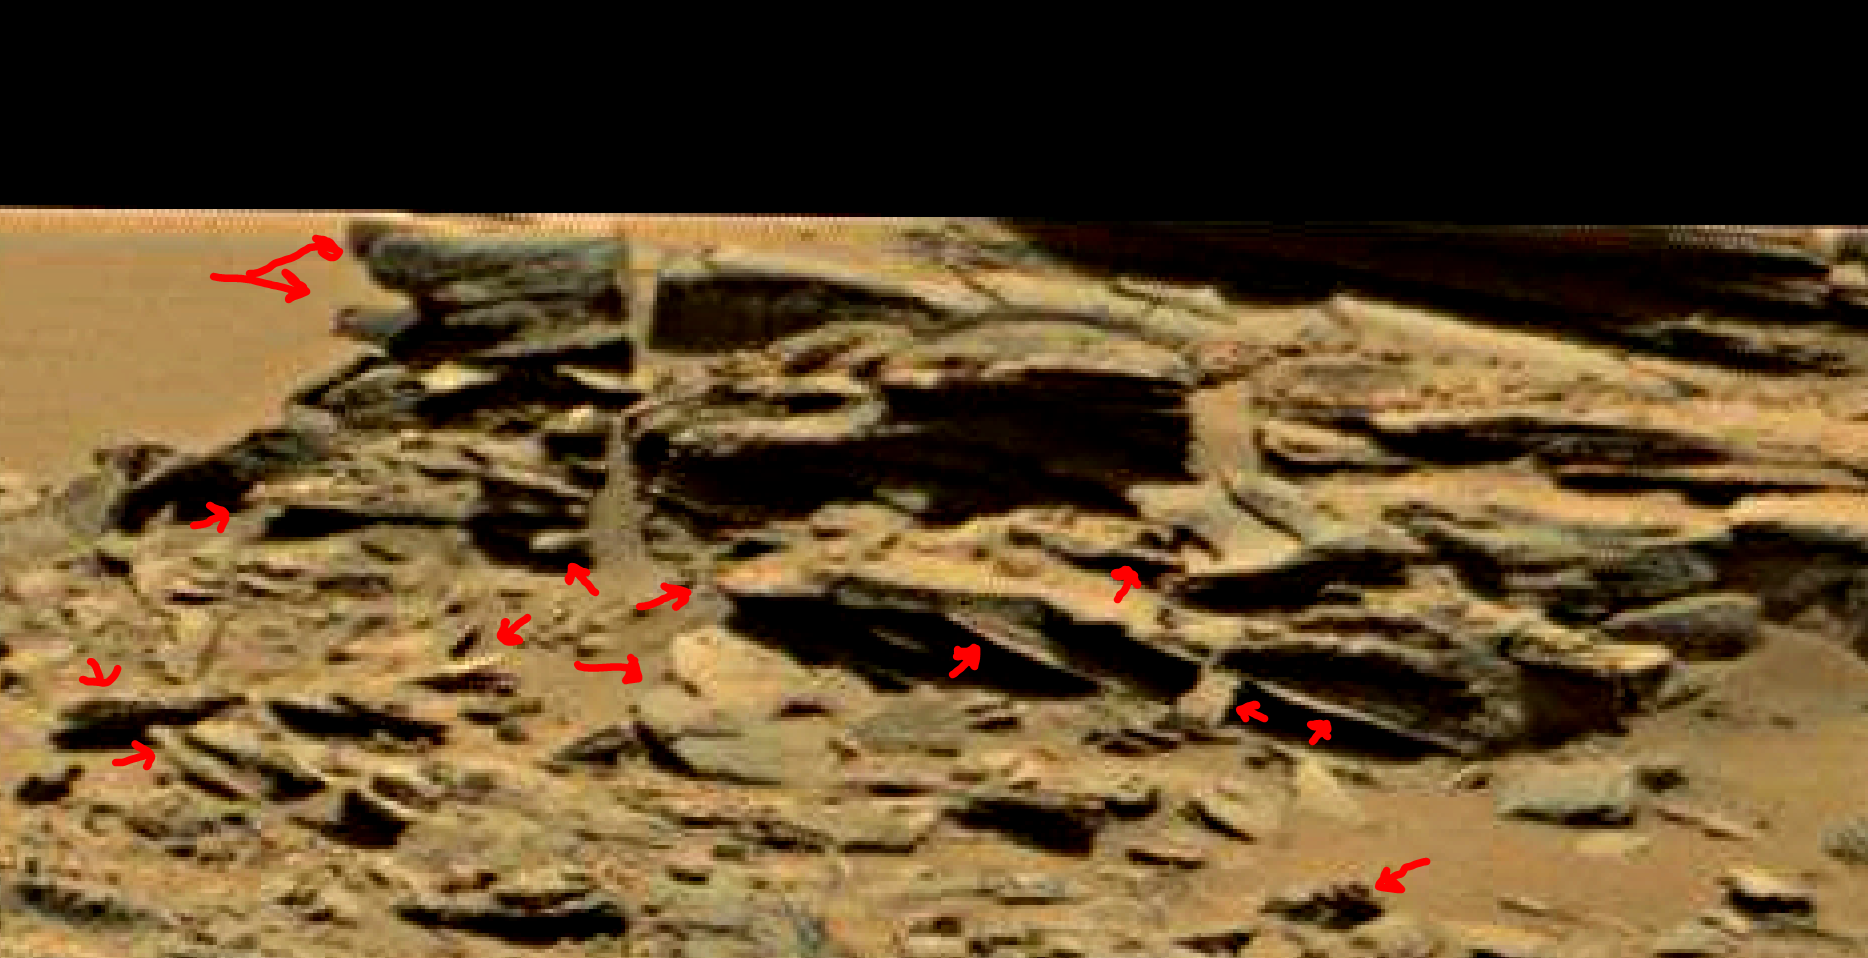 mars sol 1353 anomaly-artifacts 54a was life on mars